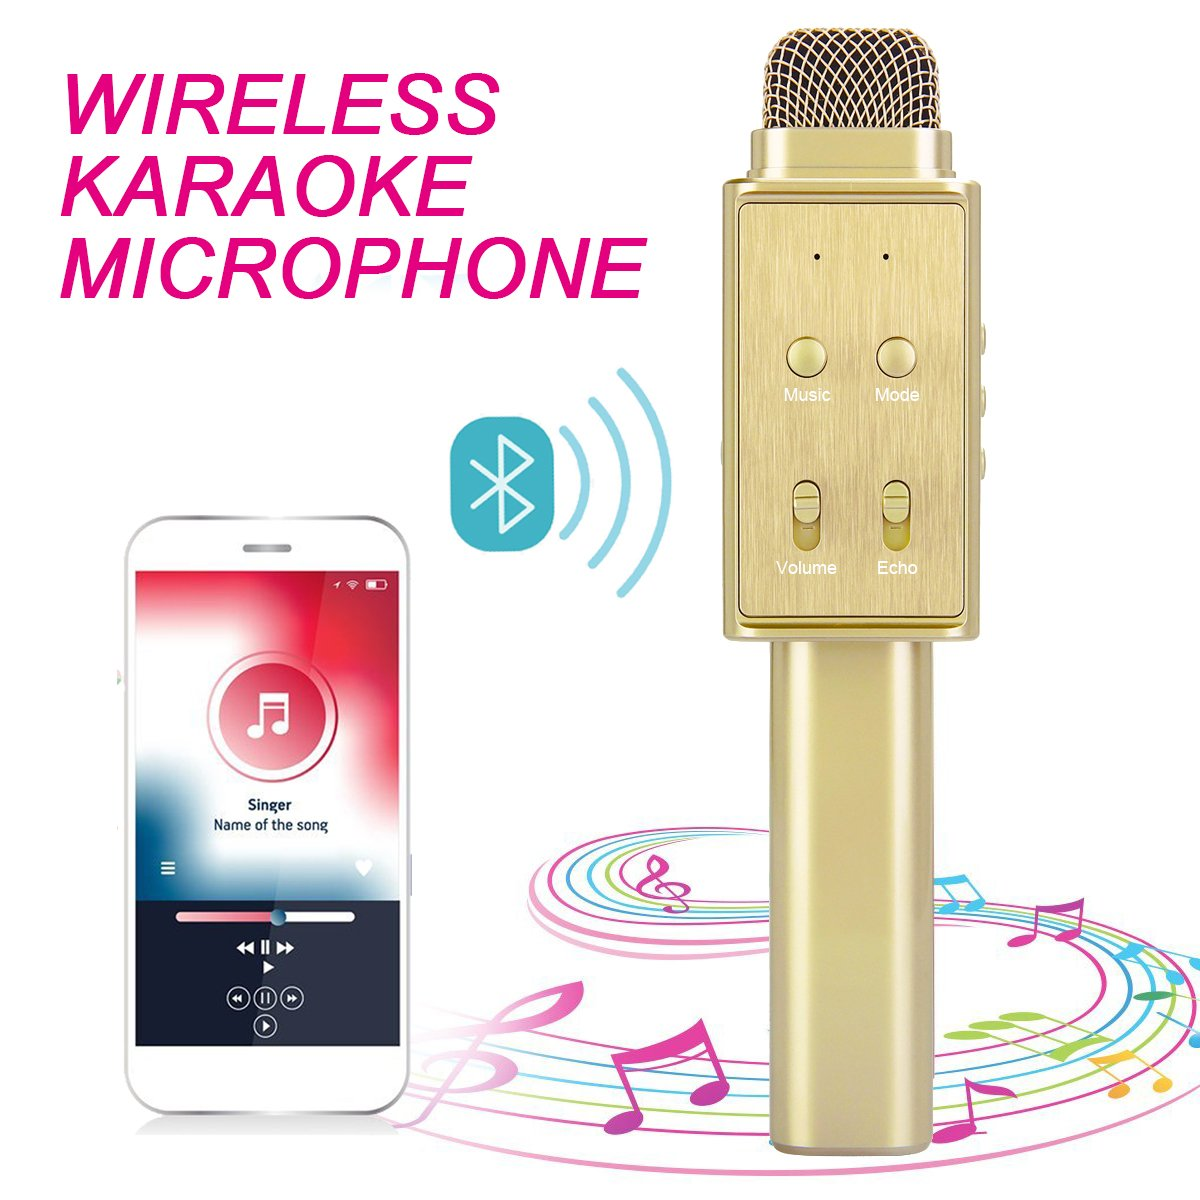 [ 3-in-1 ] Maxesla Wireless Microphone Bluetooth Wireless Karaoke Multi-function Microphone Portable Built-in Bluetooth Speaker Player for iPhone Android Smartphone Laptop and PC etc. (black) K1